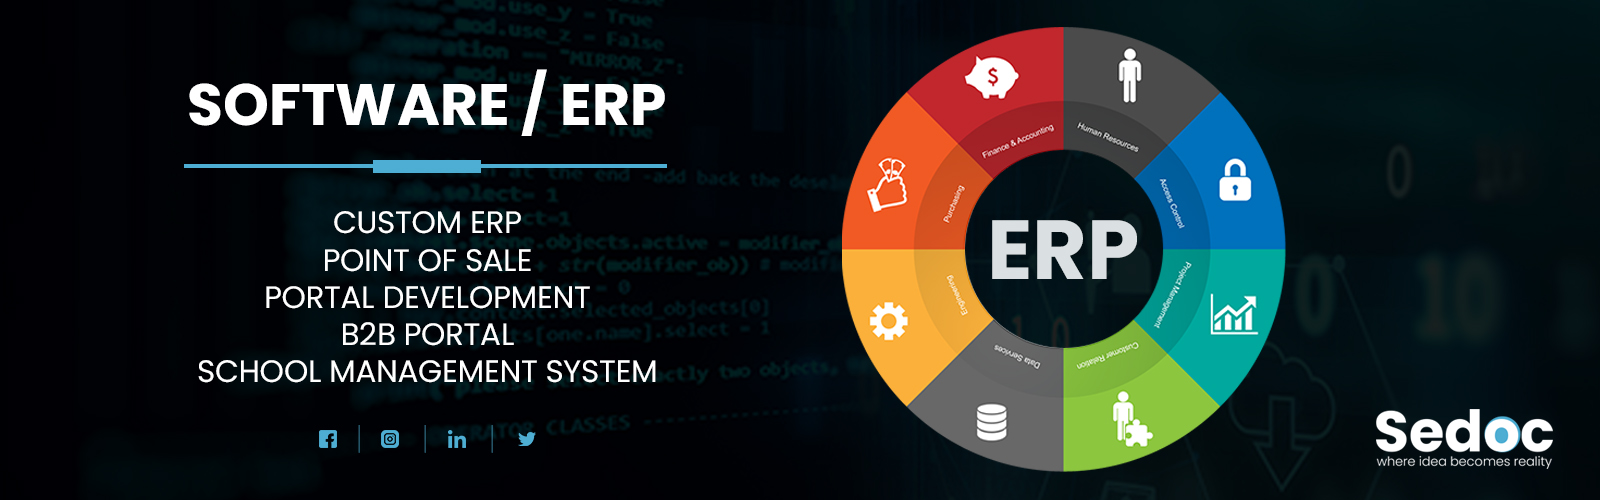 Software and ERP